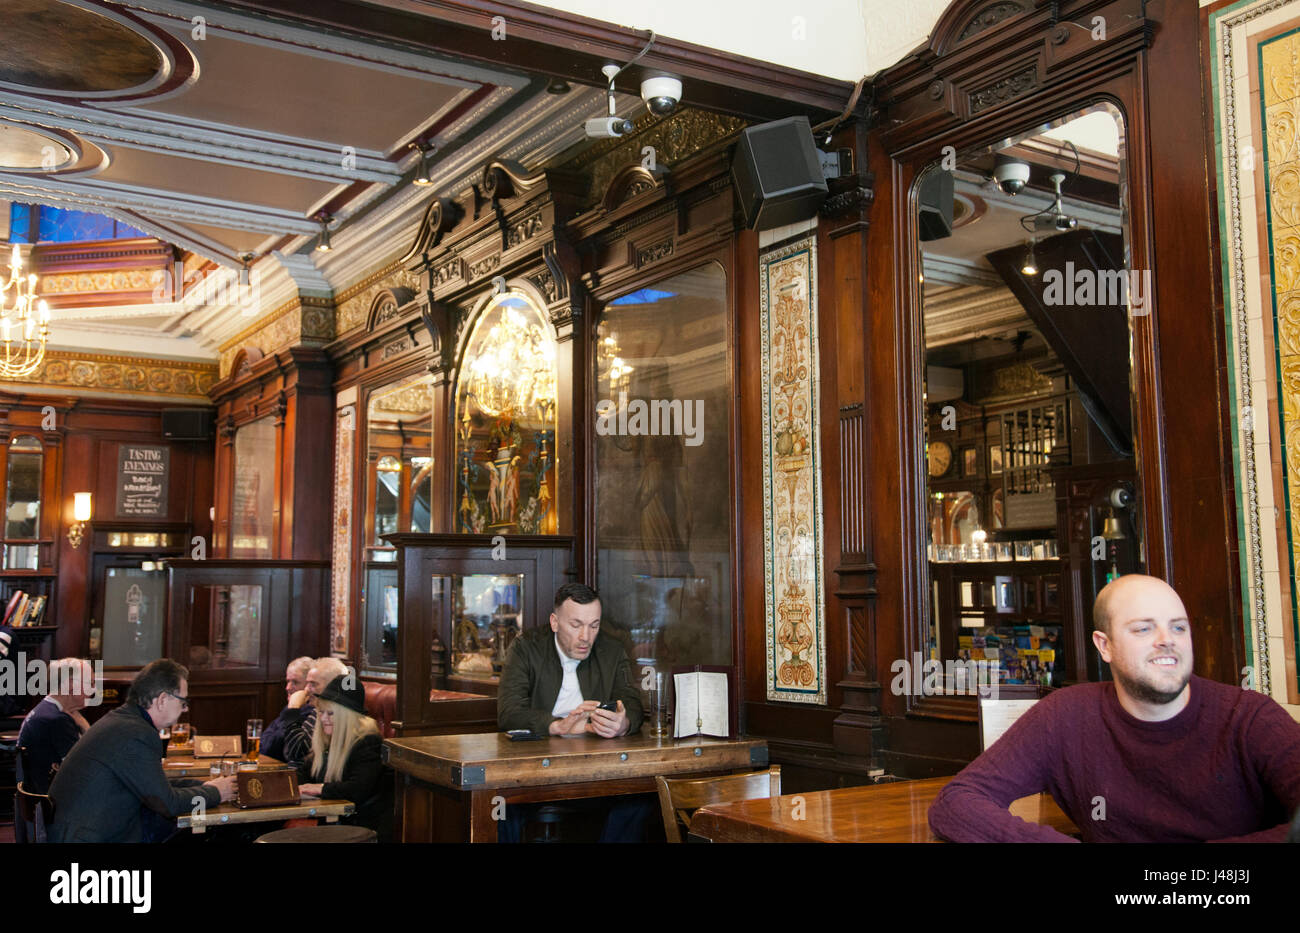 St Giles Bar on Oxford Street (near Tottenham Crt Rd) in London UK - Stock Image